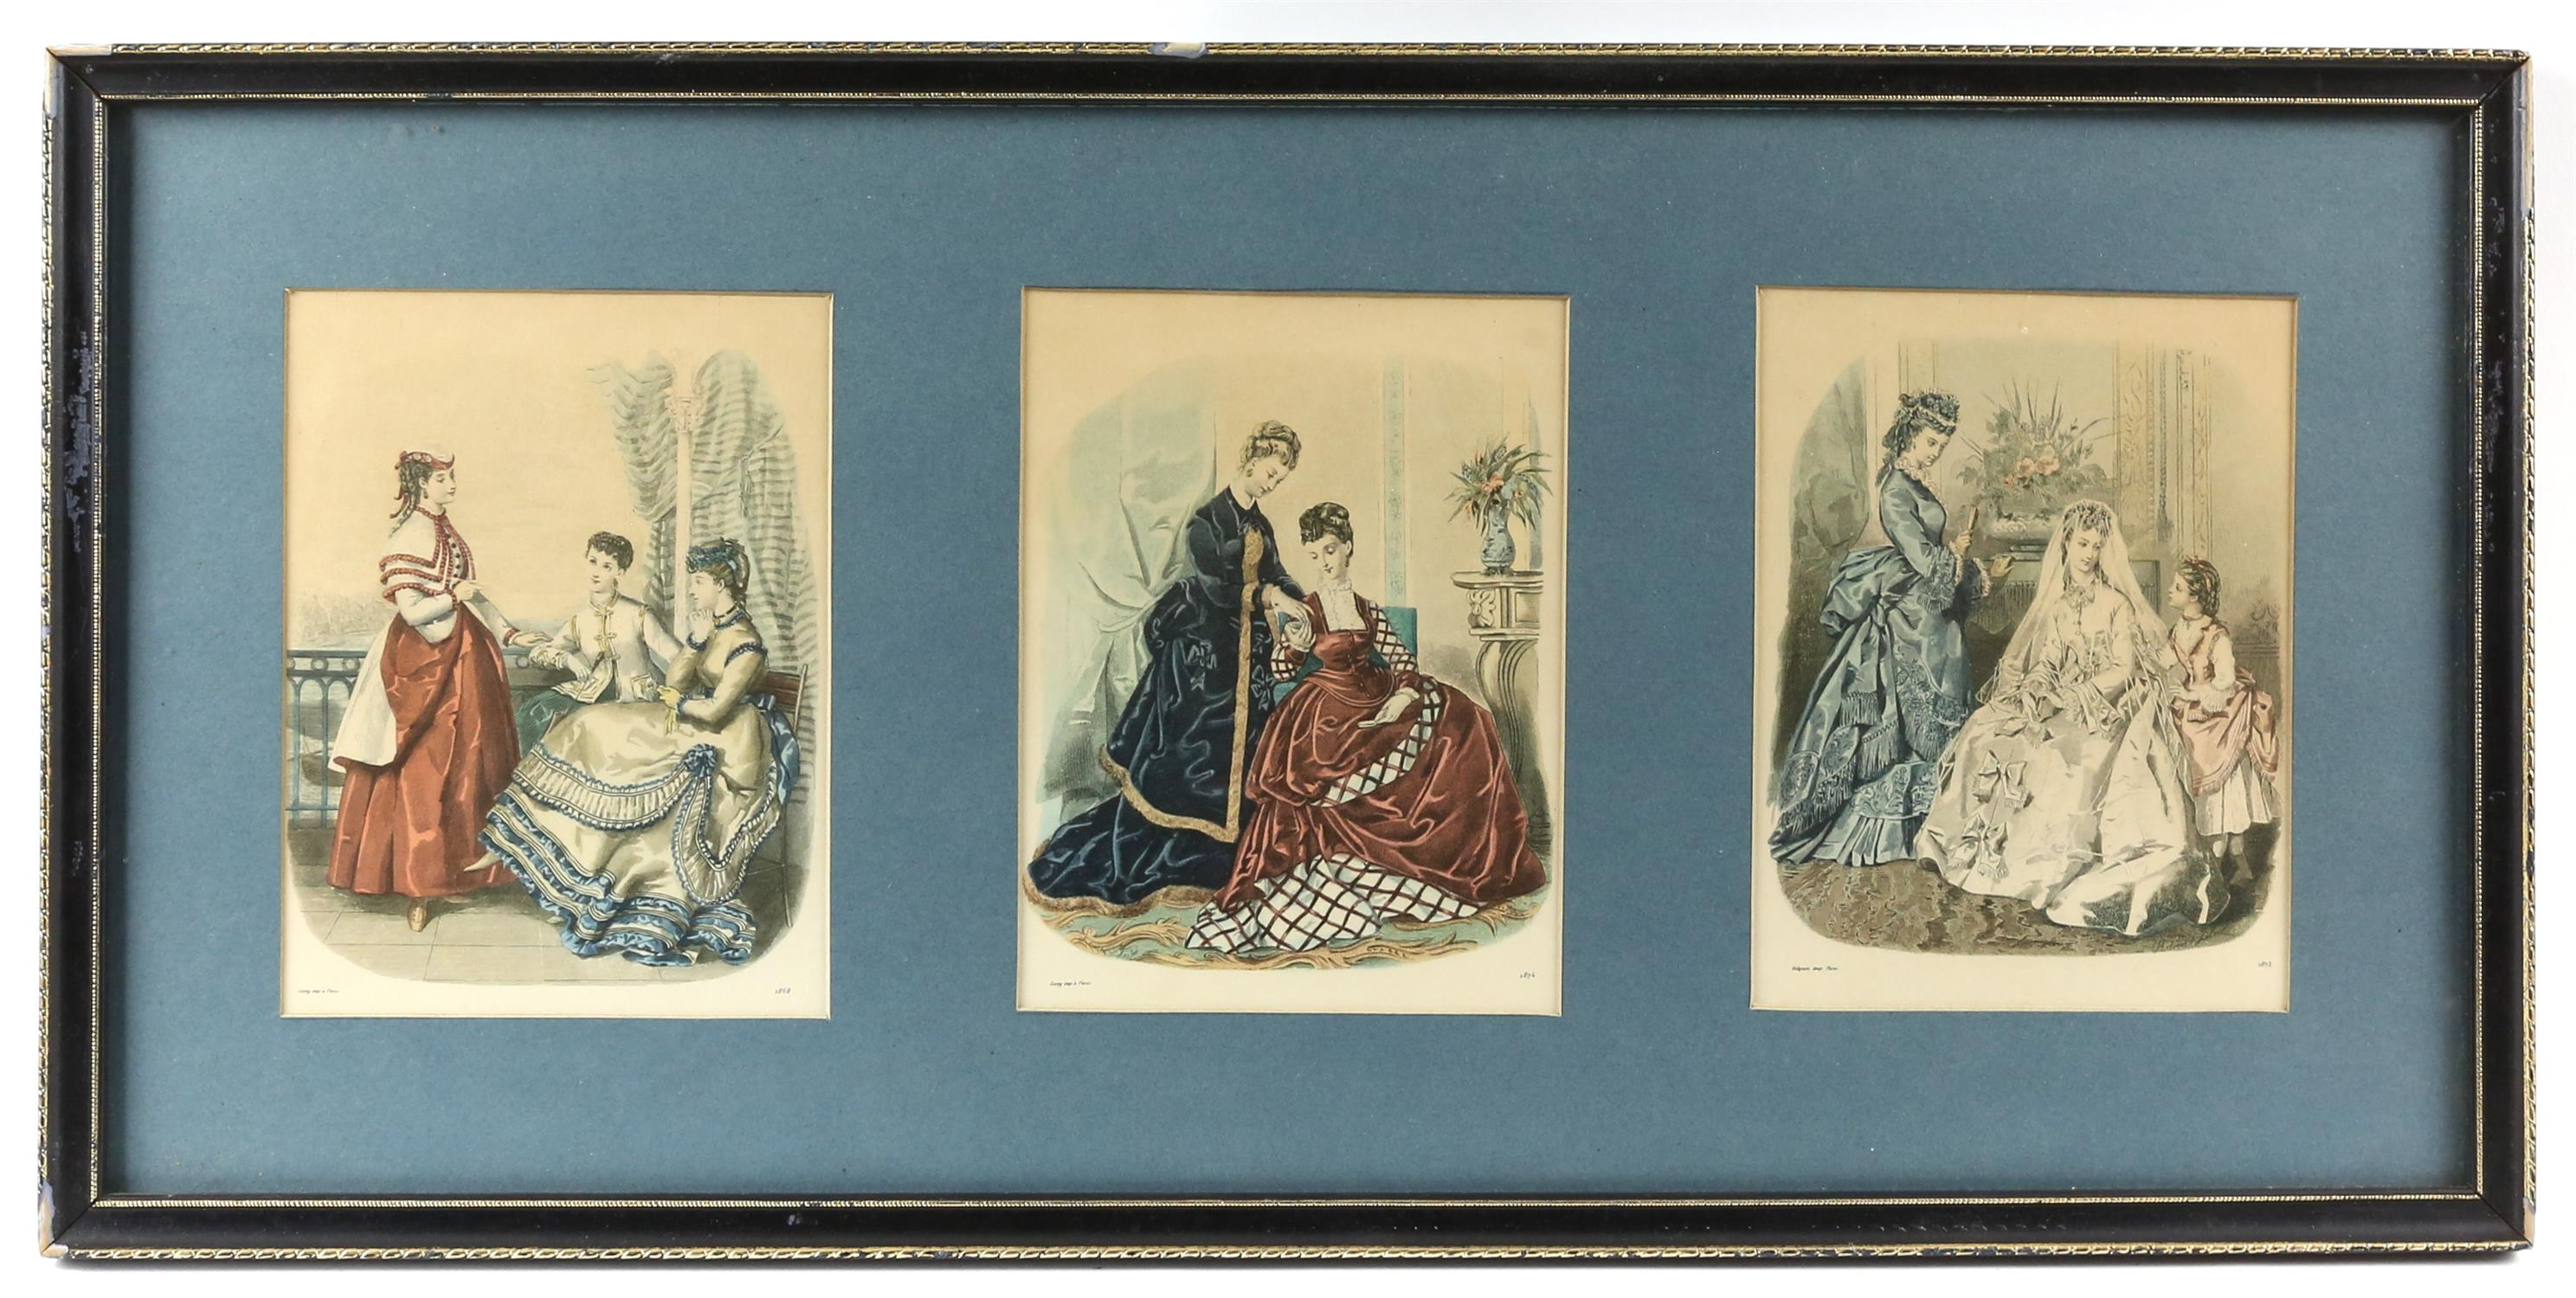 Collection of nineteenth-century French hand-coloured fashion prints, including 'Revue de la mode', - Image 3 of 5